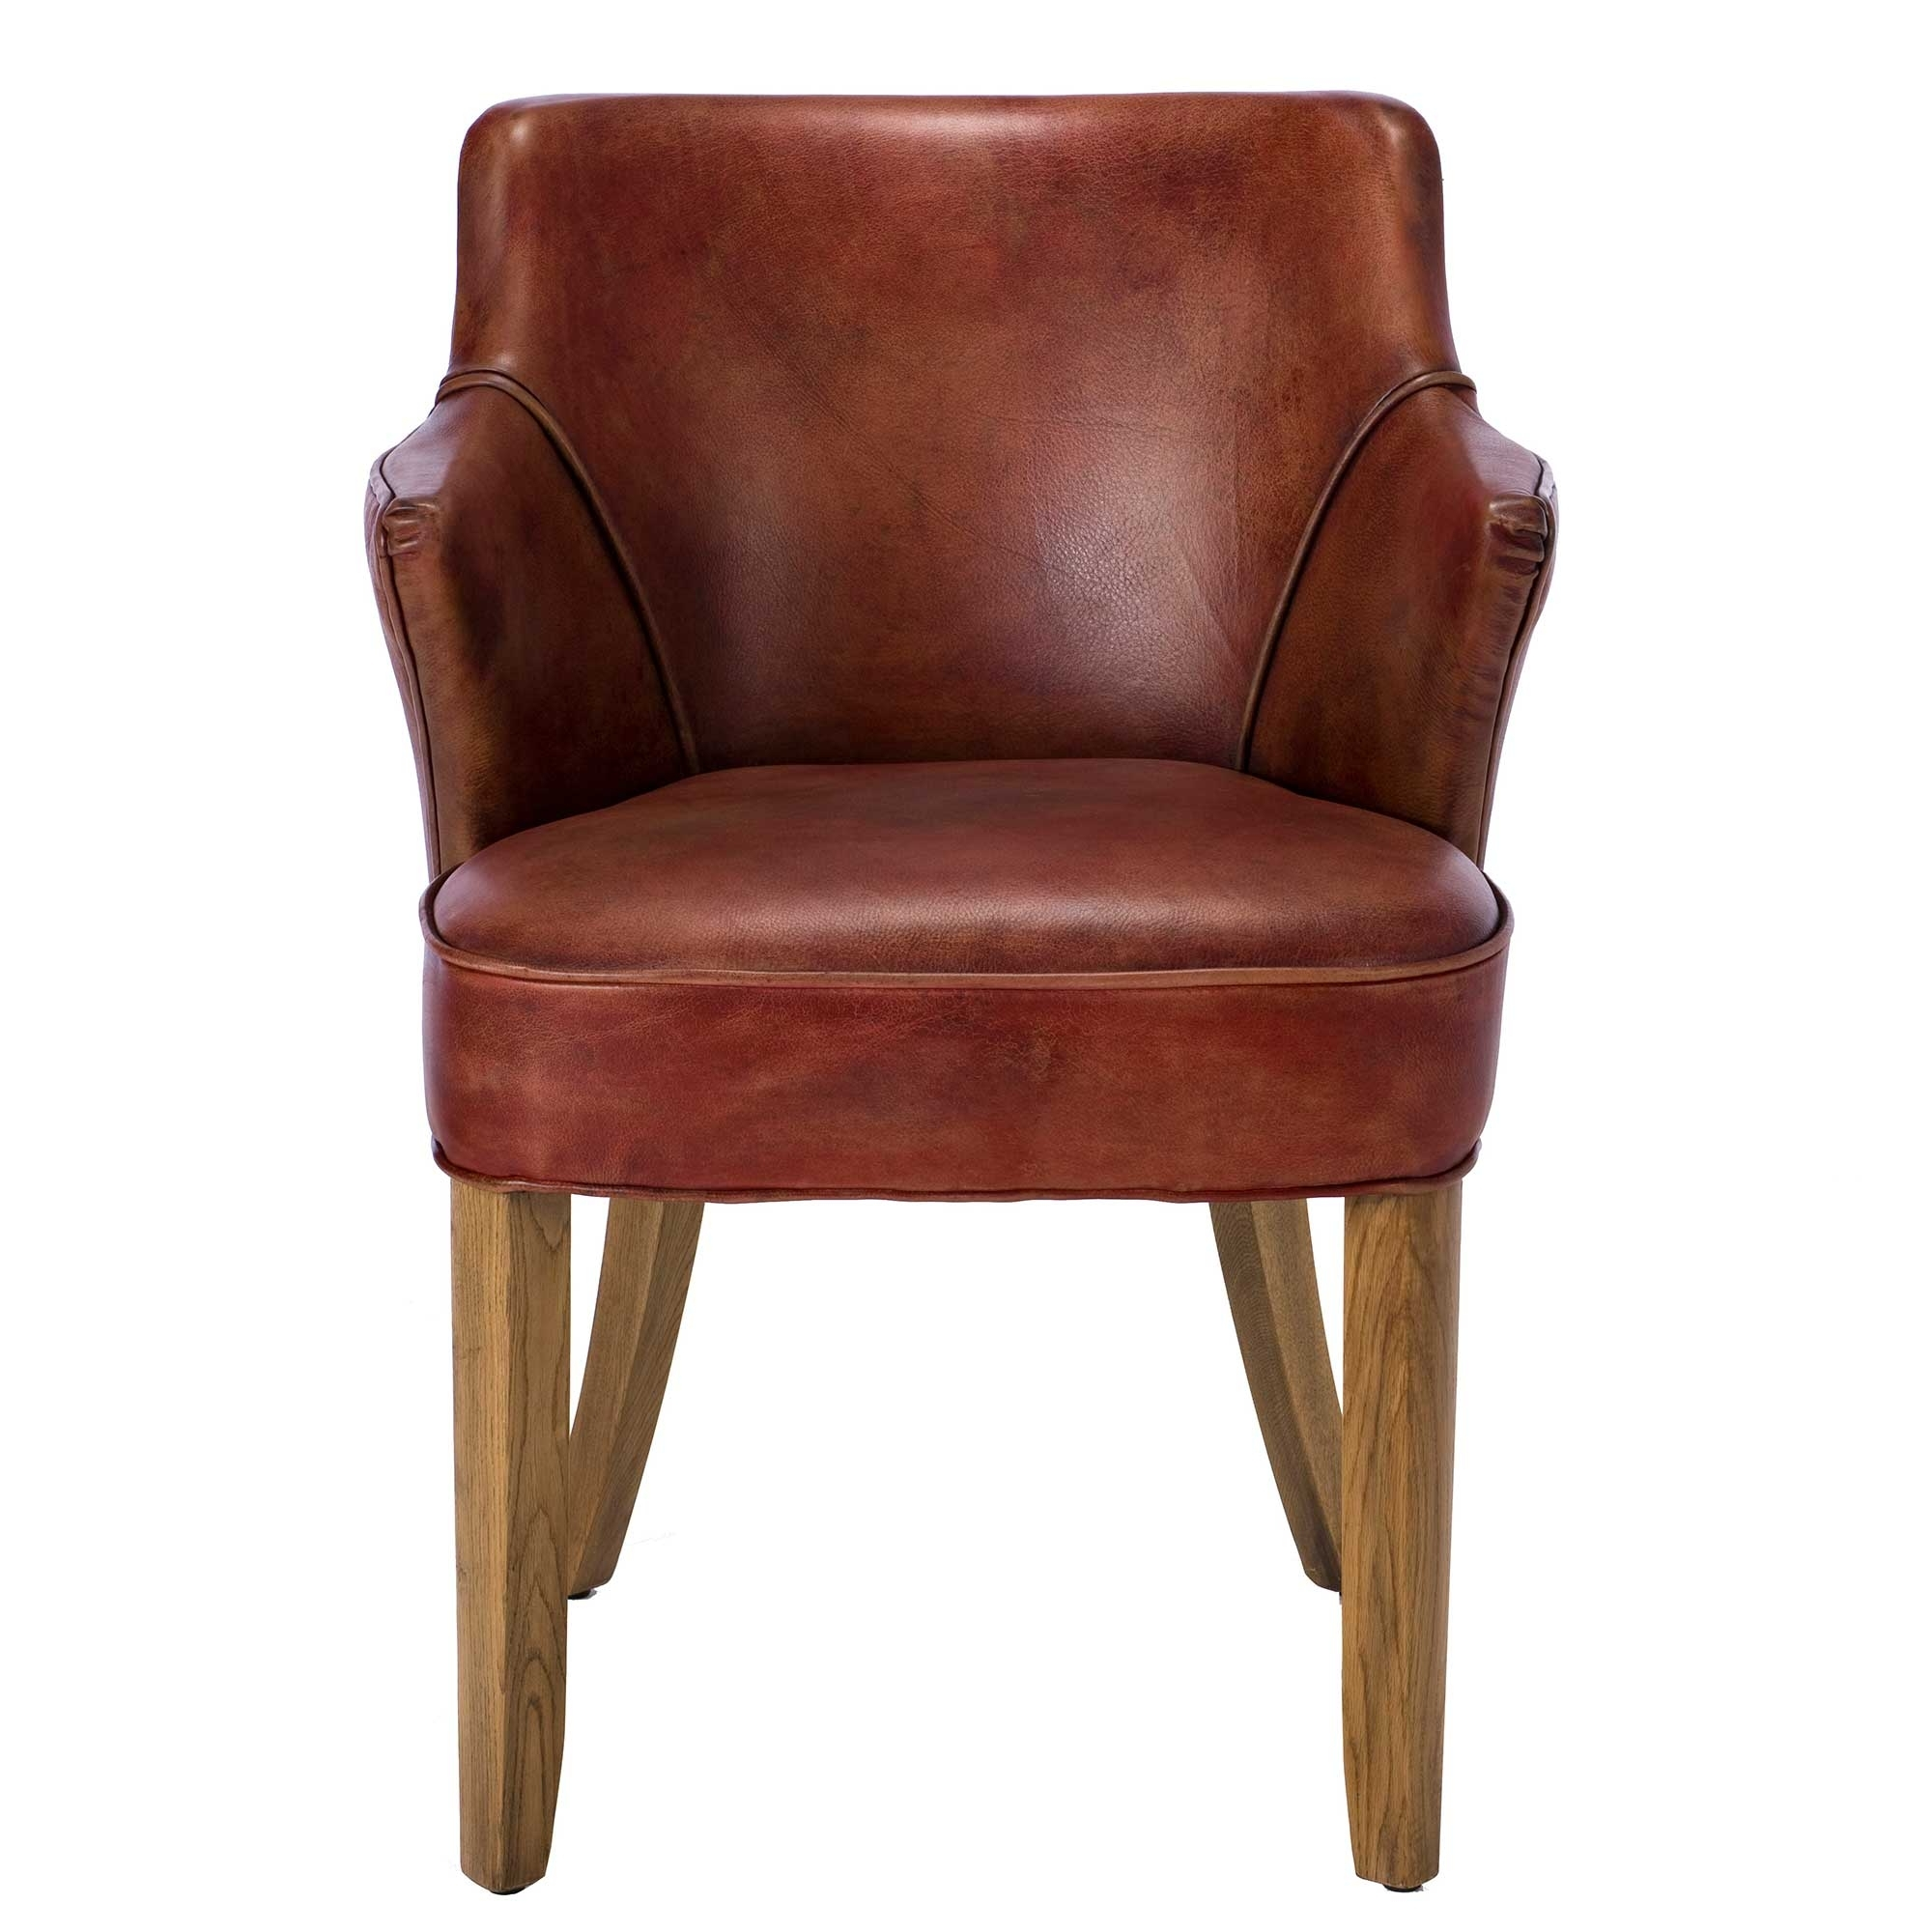 Current Red Leather Dining Chairs In Timothy Oulton Lannister Dining Chair, Vagabond Red Leather (View 6 of 25)